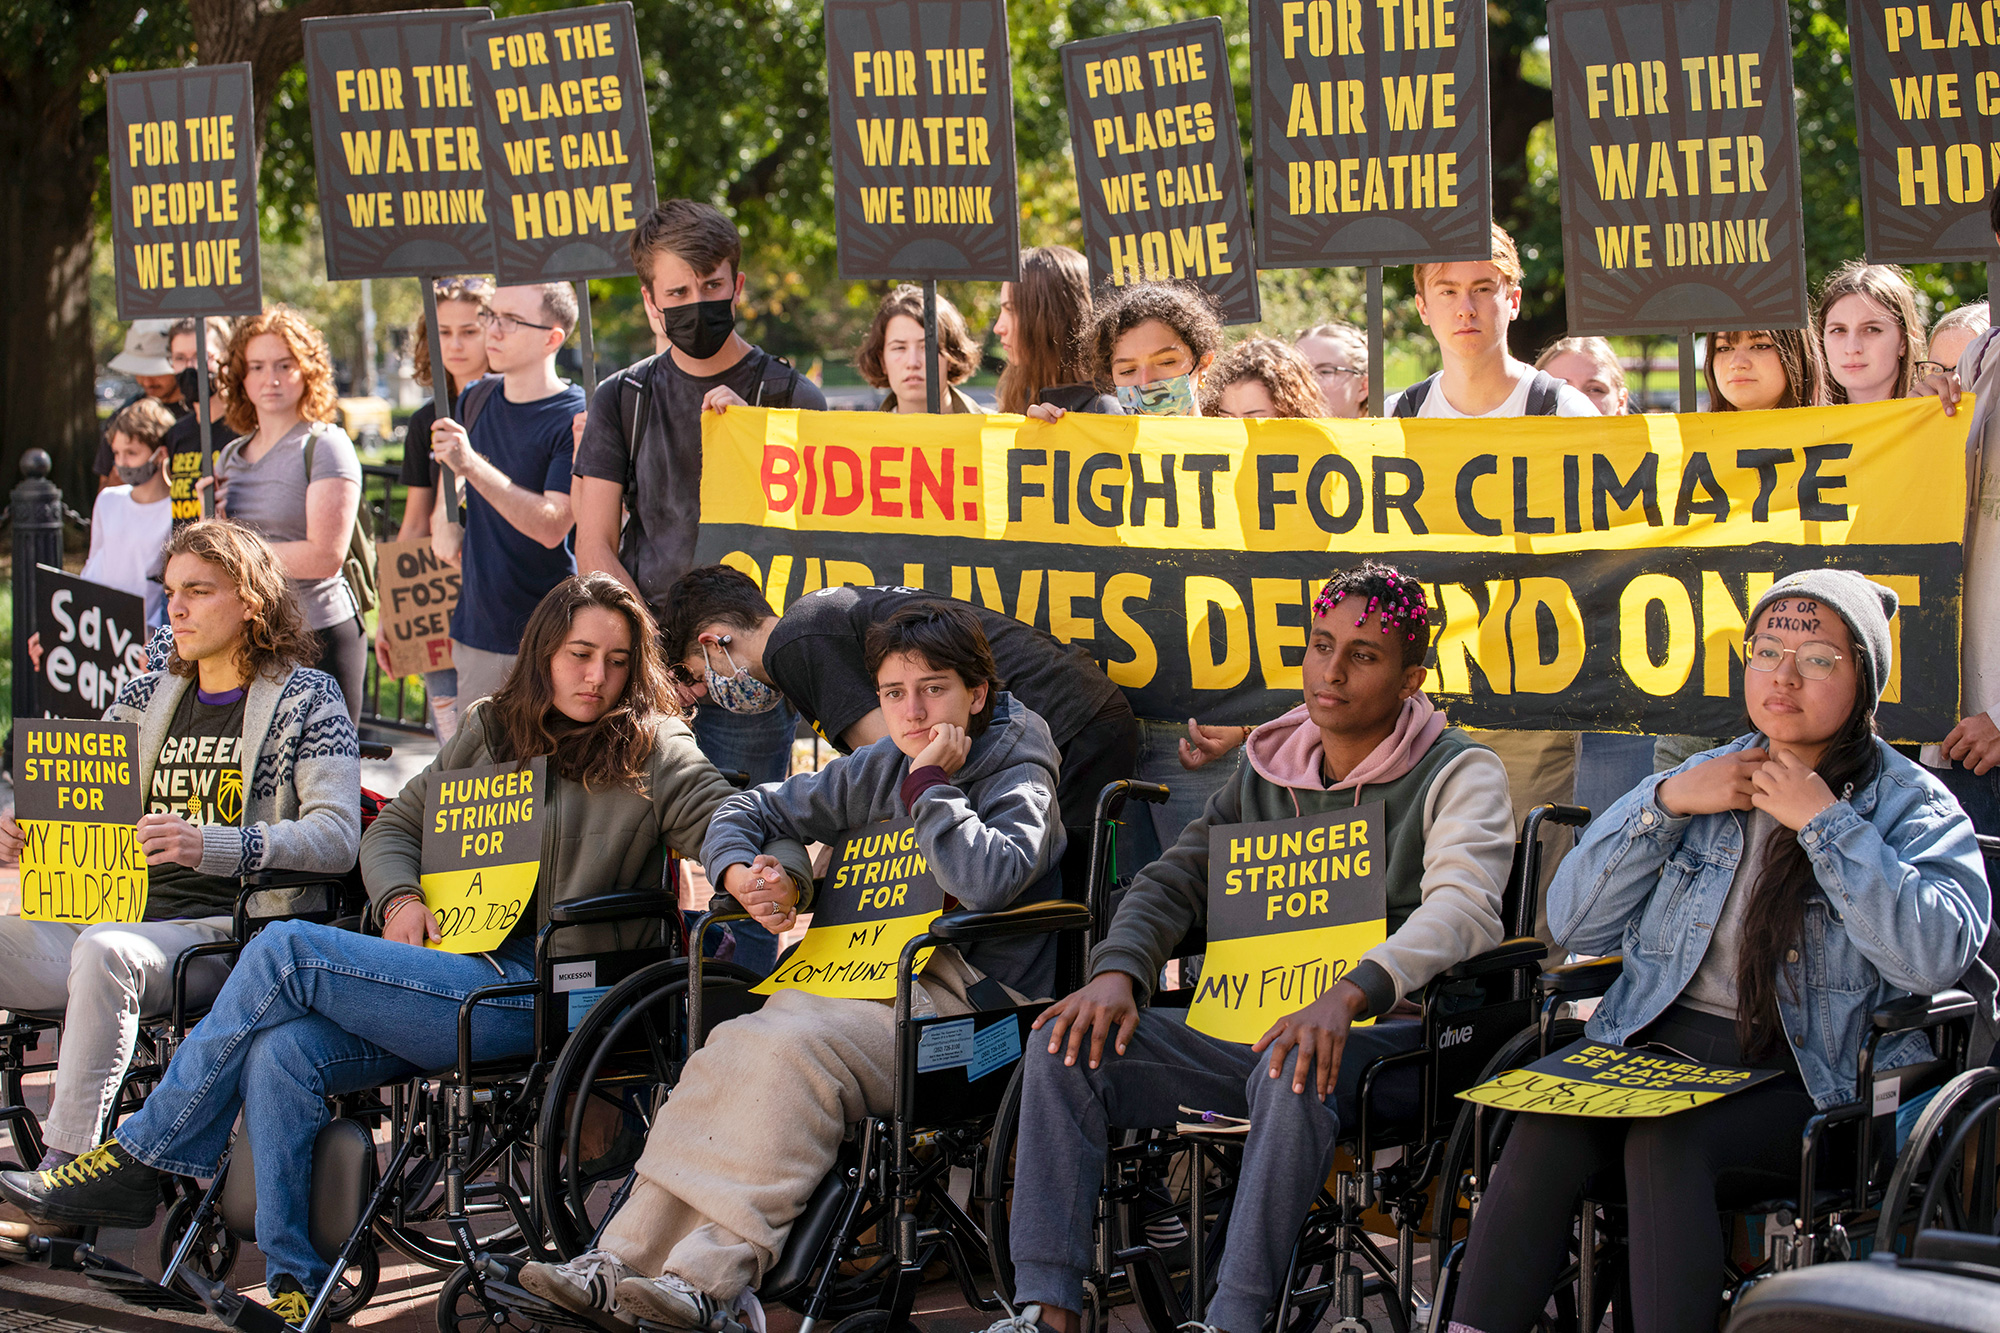 Environmental activists protest and five individuals stage a hunger strike to call for greater climate protections in the current spending bills being debated in Congress in Washington, D.C. on October 22, 2021.